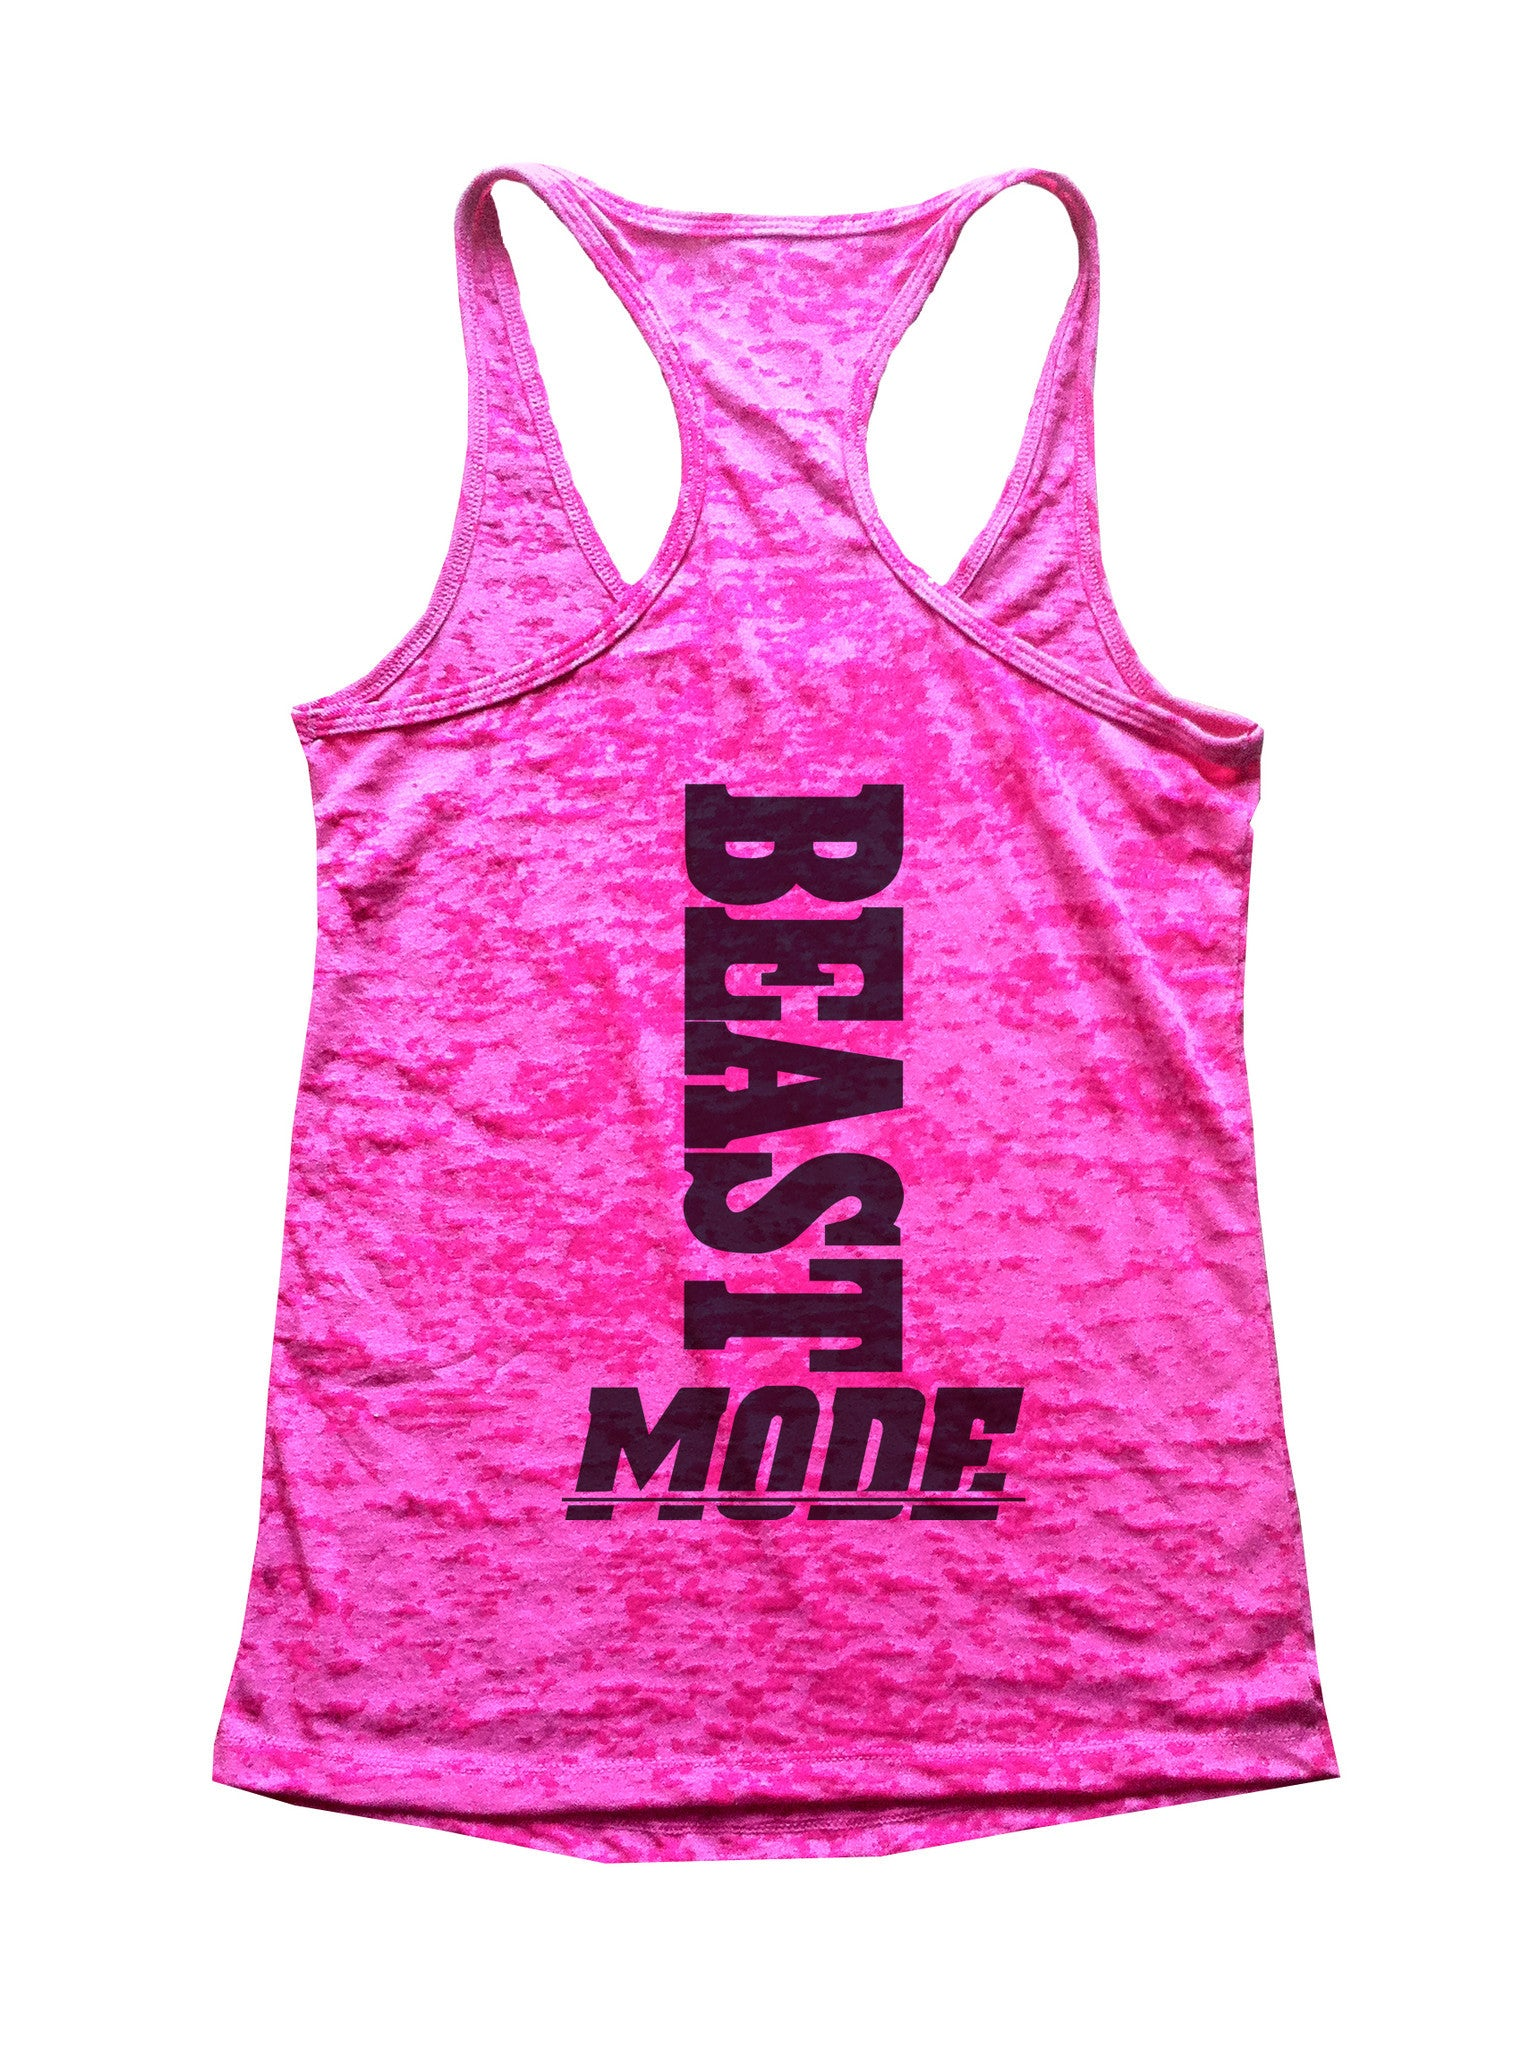 Beast Mode Burnout Tank Top By BurnoutTankTops.com - 595 - Funny Shirts Tank Tops Burnouts and Triblends  - 3